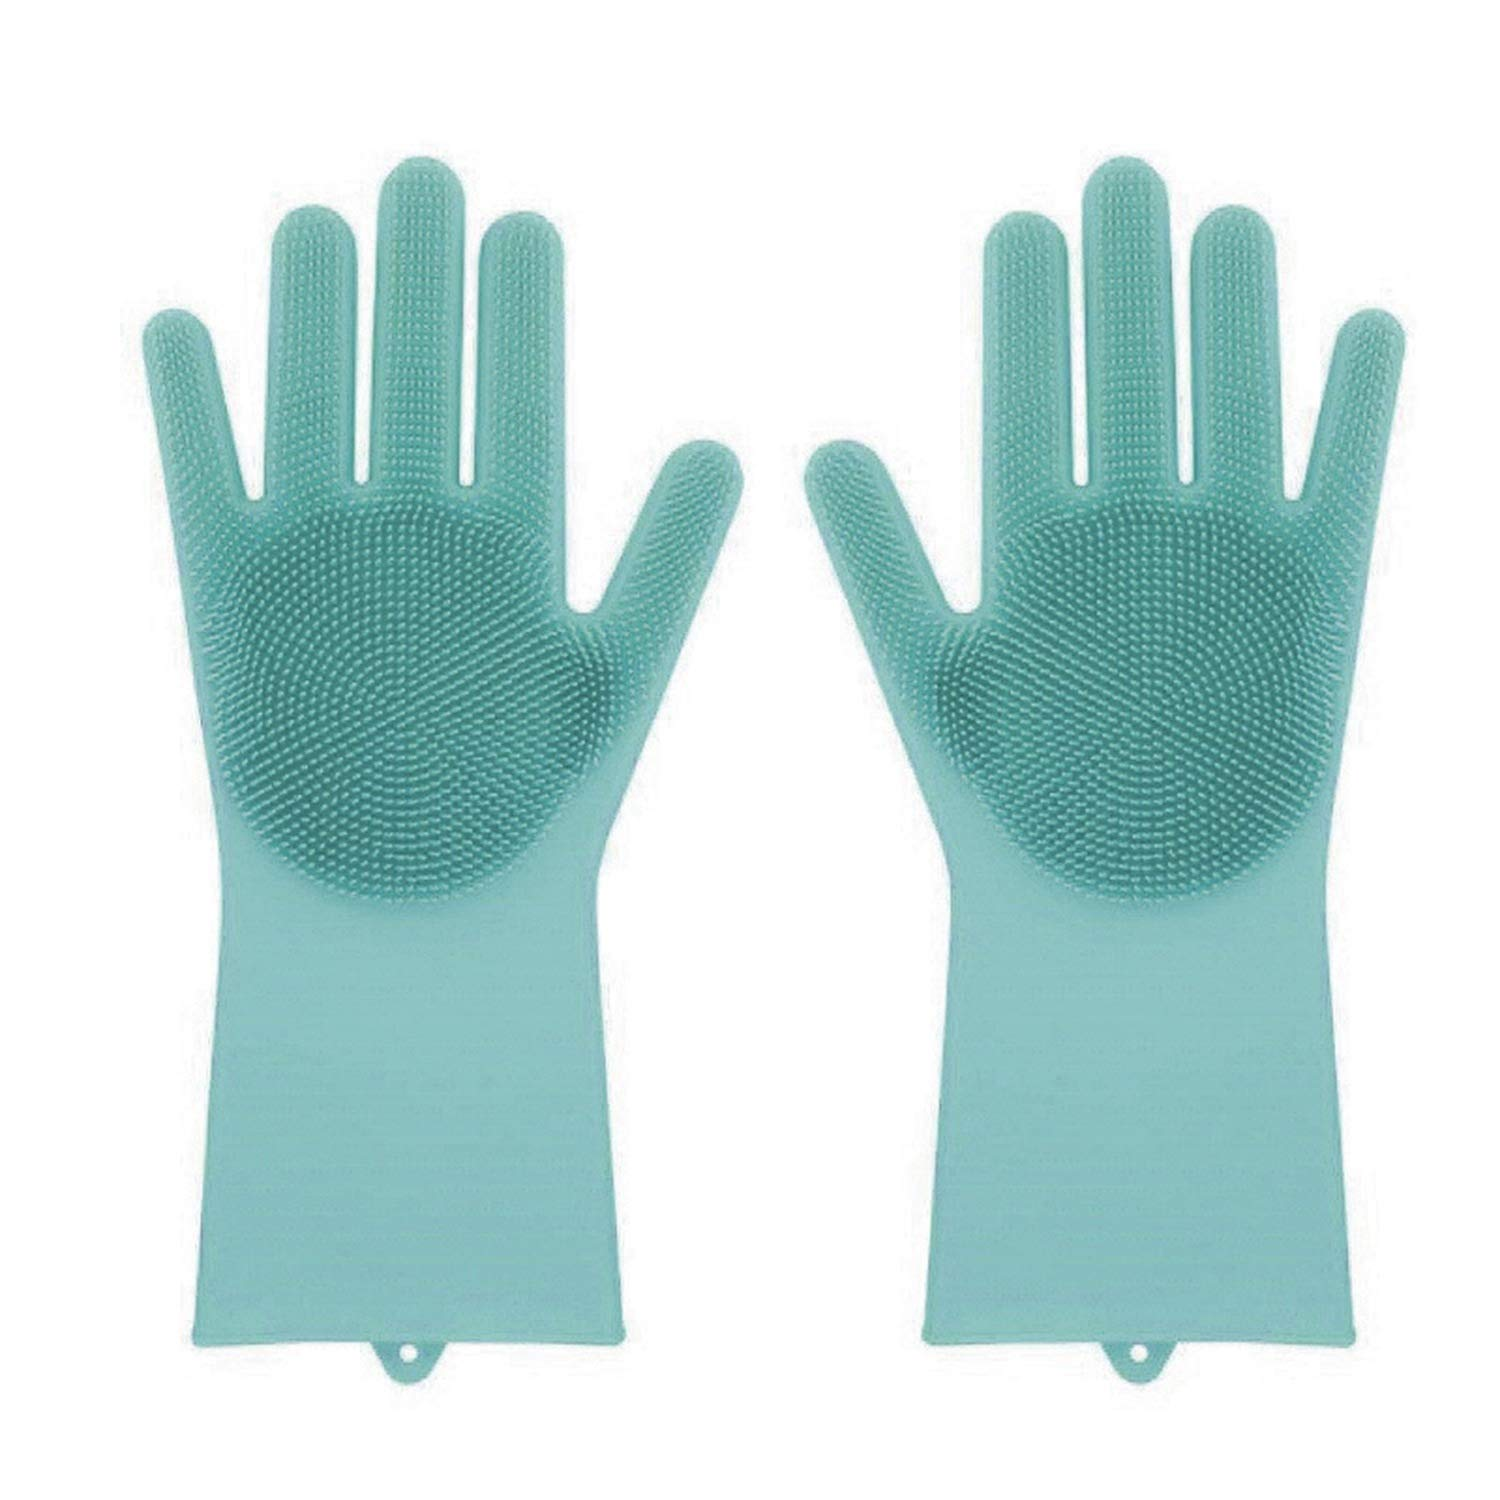 Magic Silicone Rubber Dish Washing Gloves -ping Eco-Friendly Scrubber Cleaning Silicon Dish Scrubber Glove,Green,1 Pair